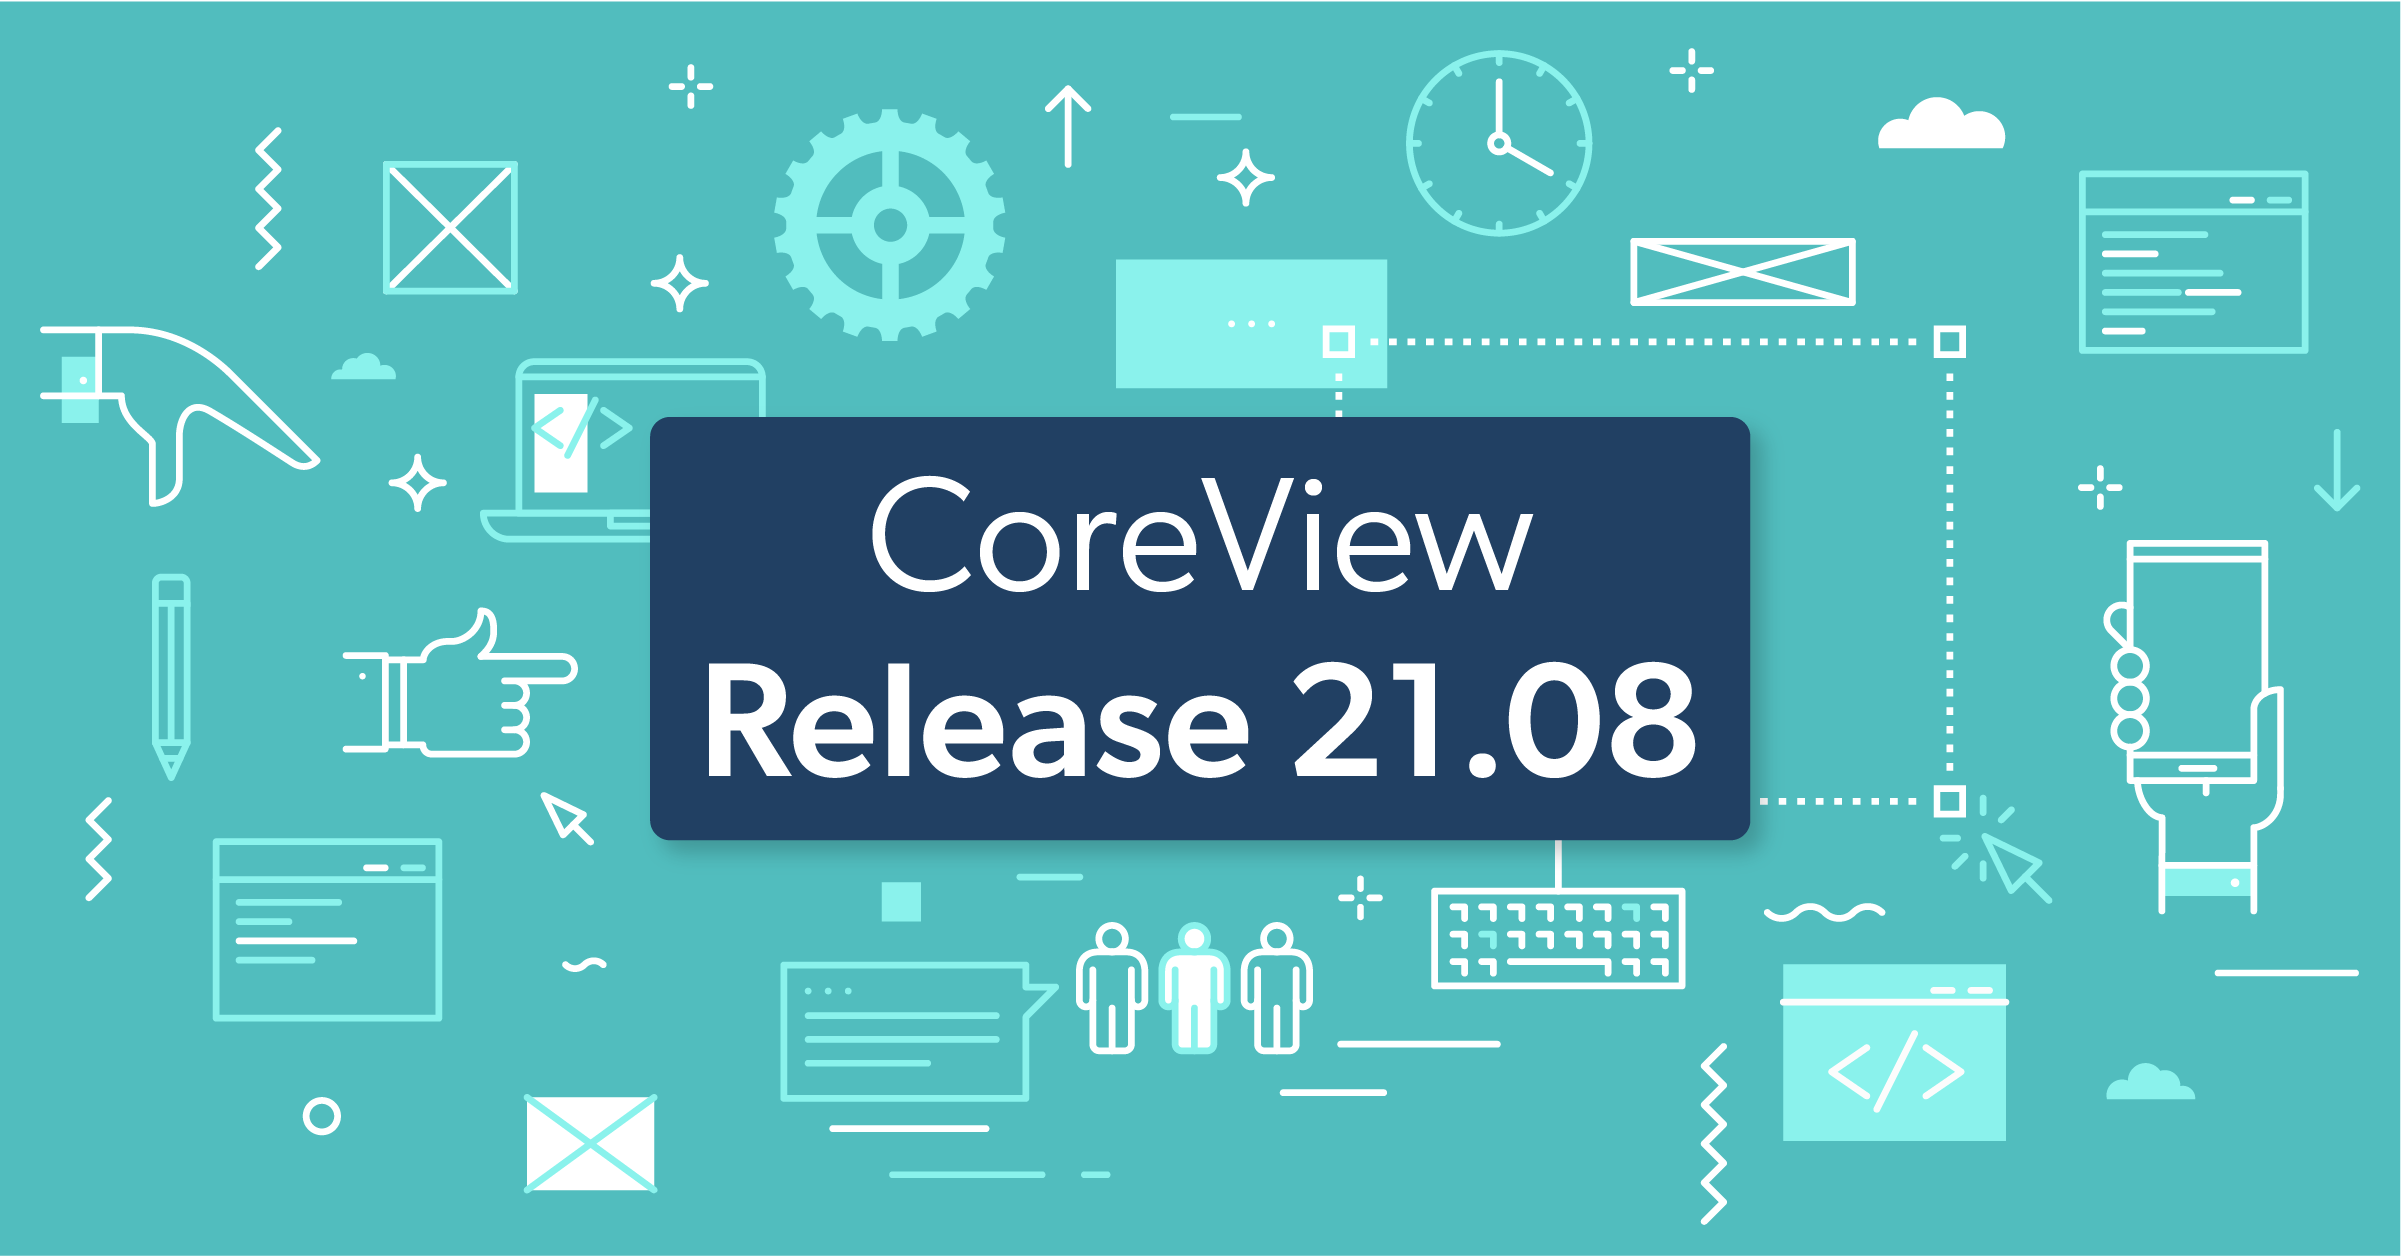 CoreView Release 21.08